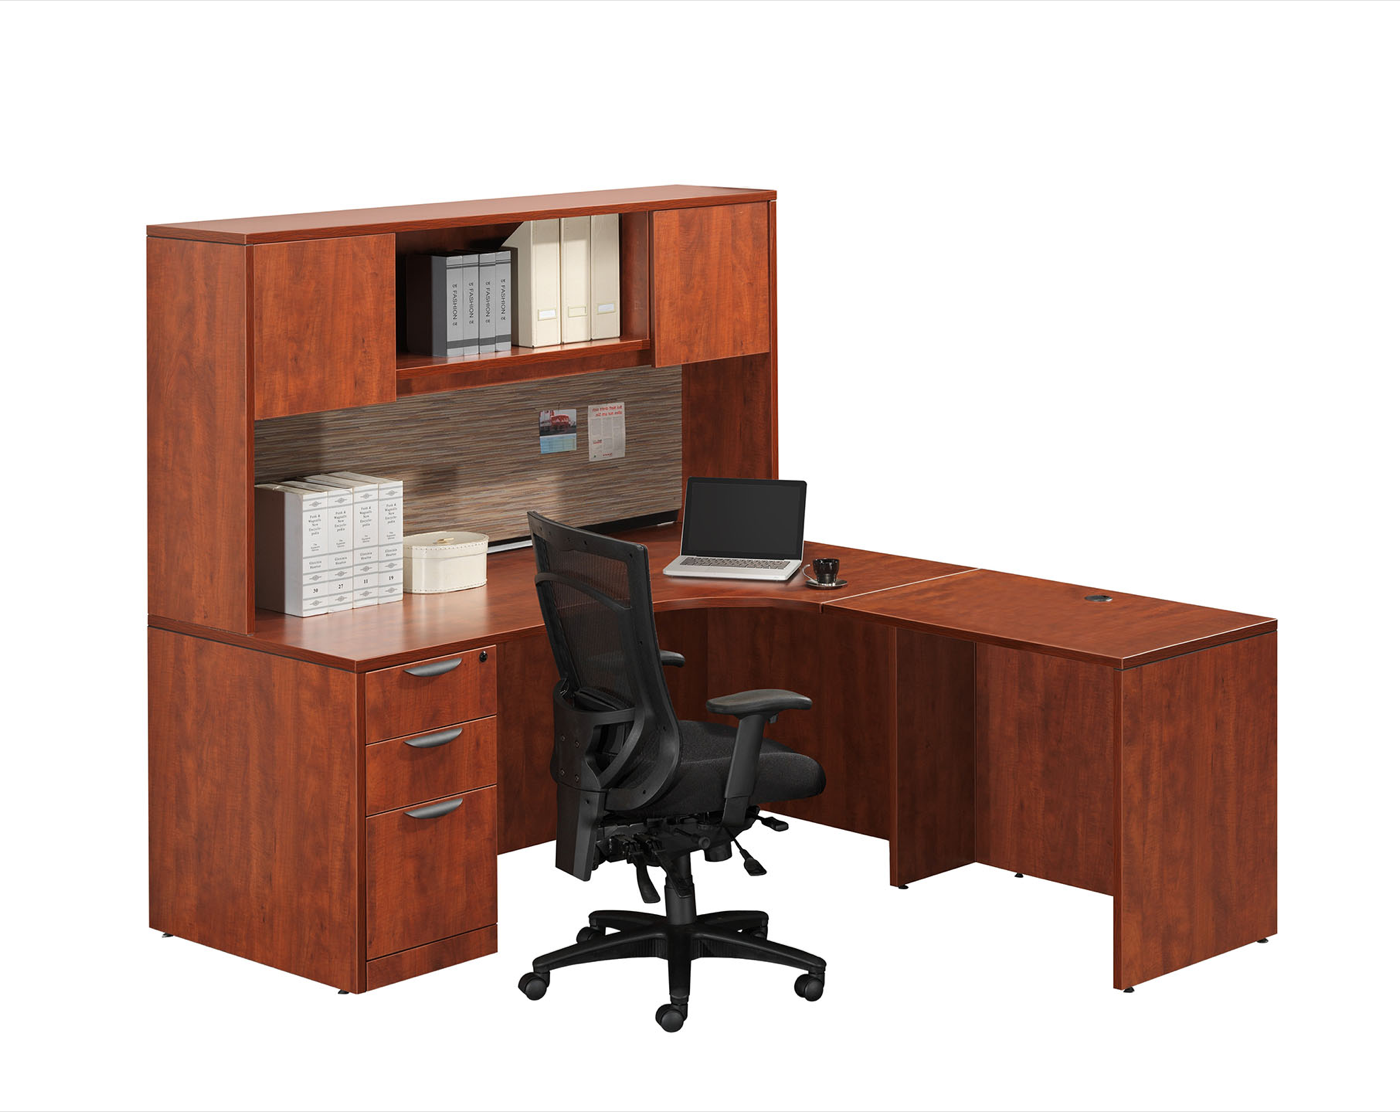 New Cherryman D Top Peninsula L Desk With 30 Return To Email On This Item